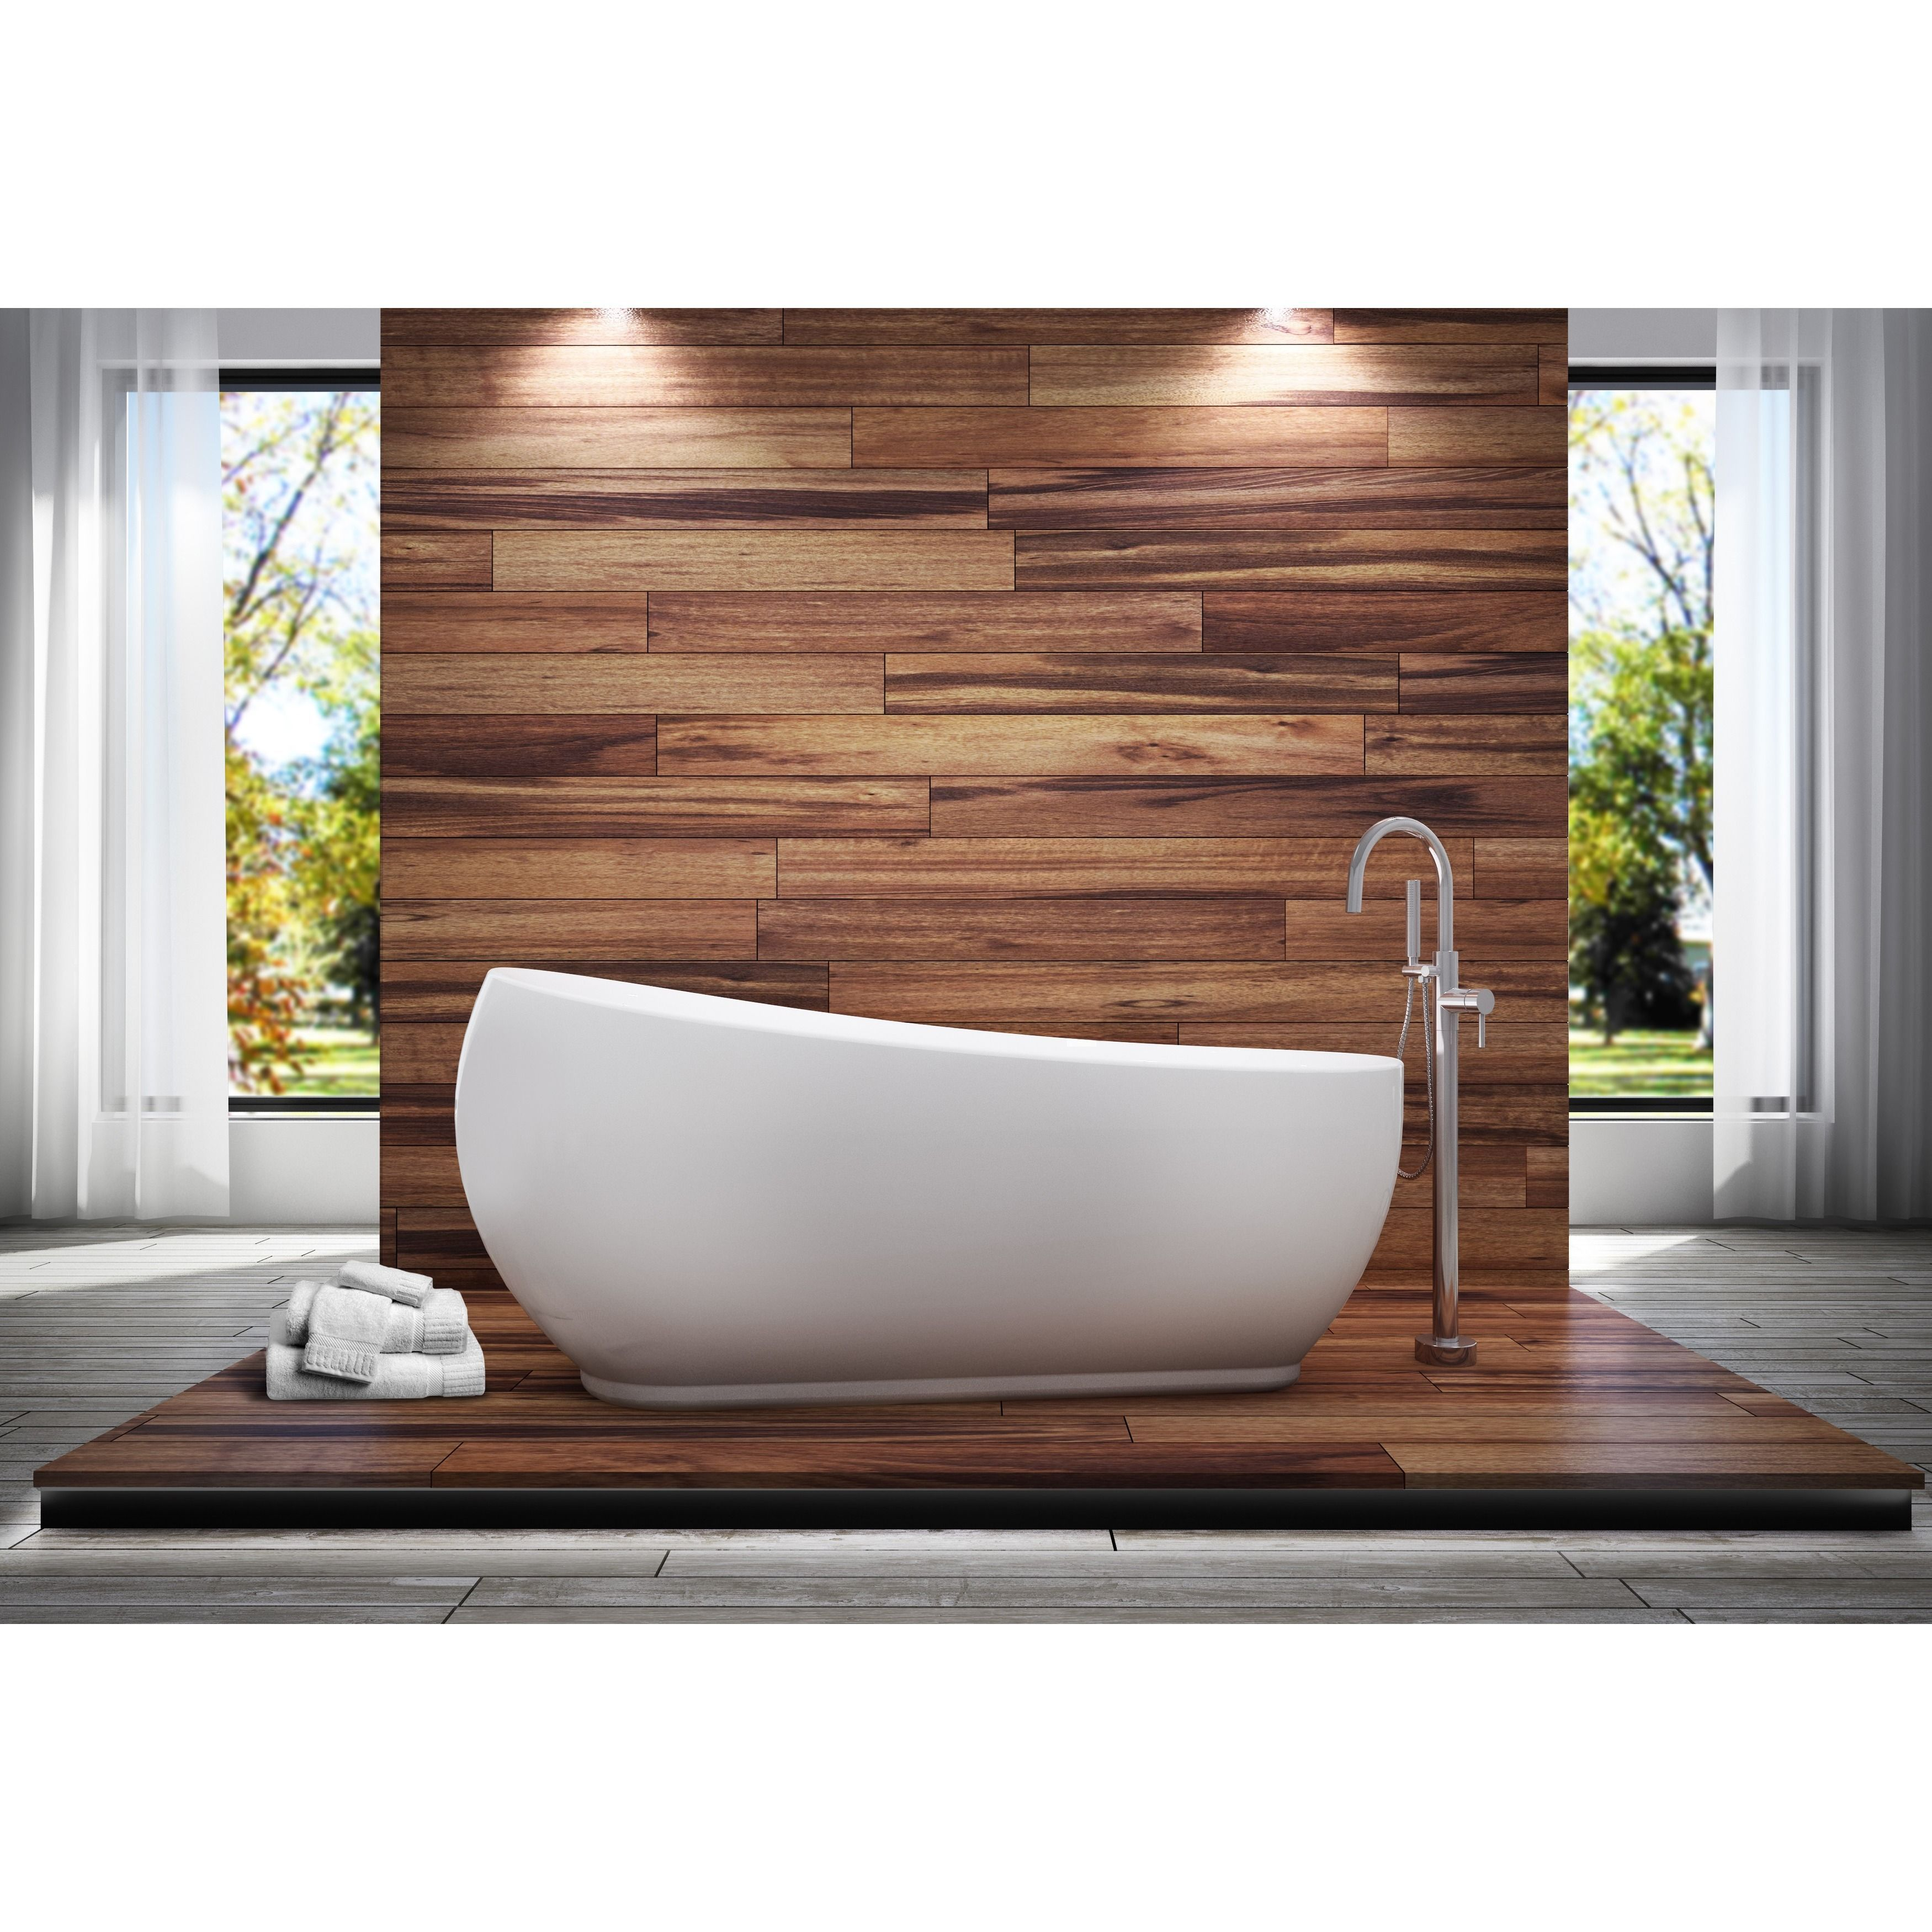 Hook Up The Oslo All In One Tub Combo And Enjoy A Bathing Experience